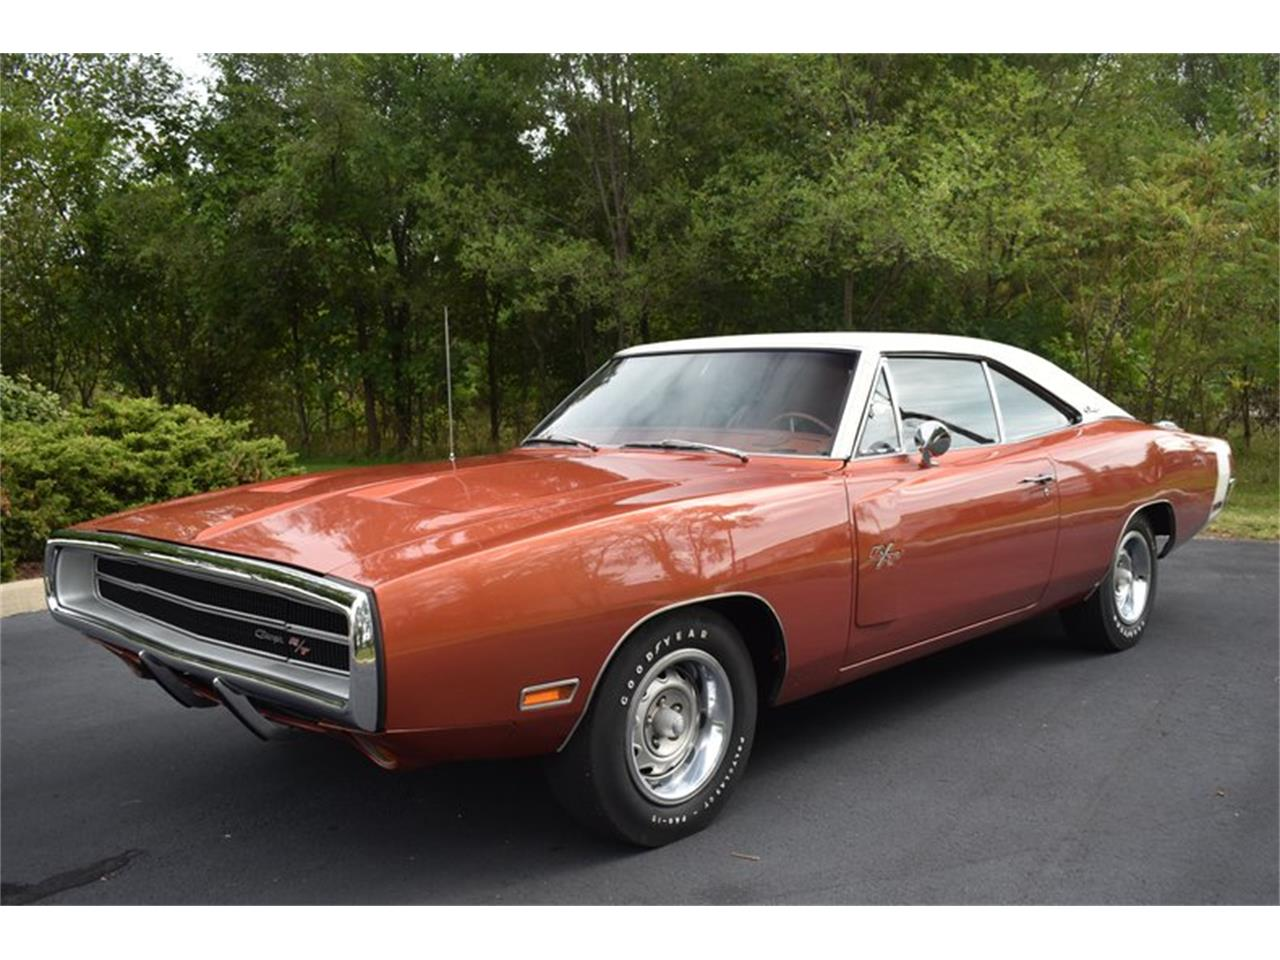 for sale 1970 dodge charger in elkhart, indiana cars - elkhart, in at geebo